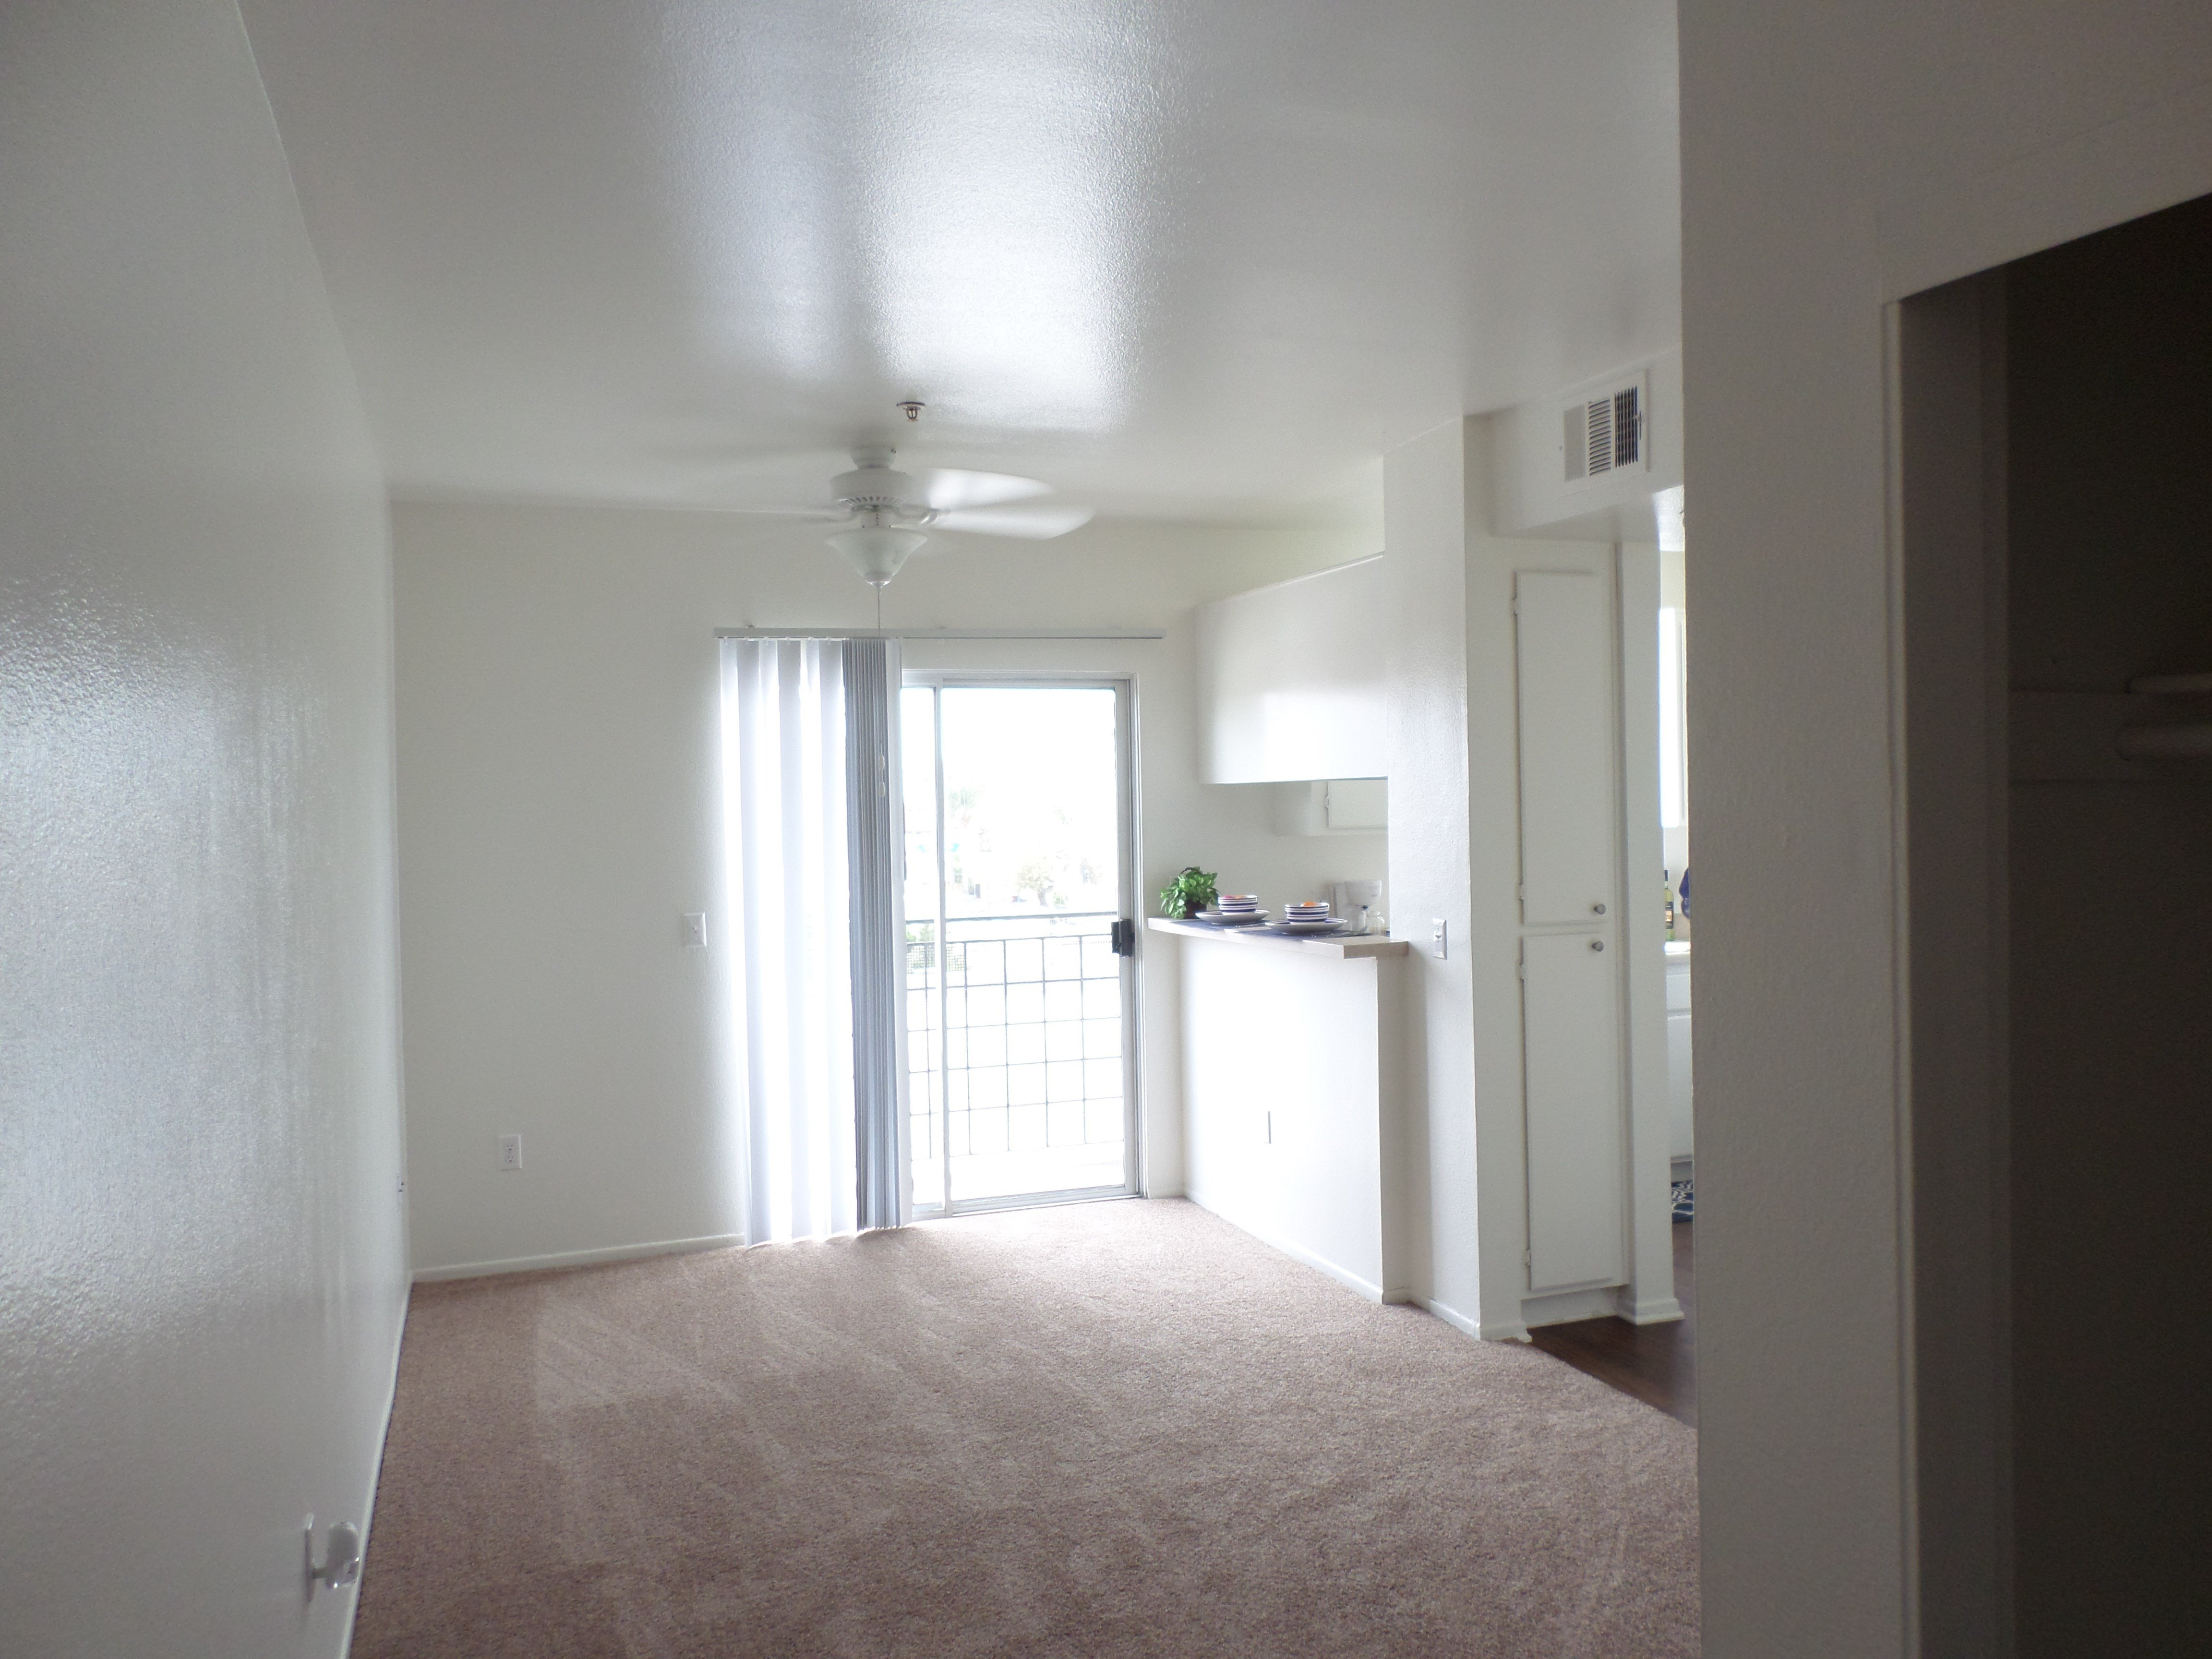 Best 1 Bedroom Apartments In Los Angeles Under 600 For Rent With Pictures